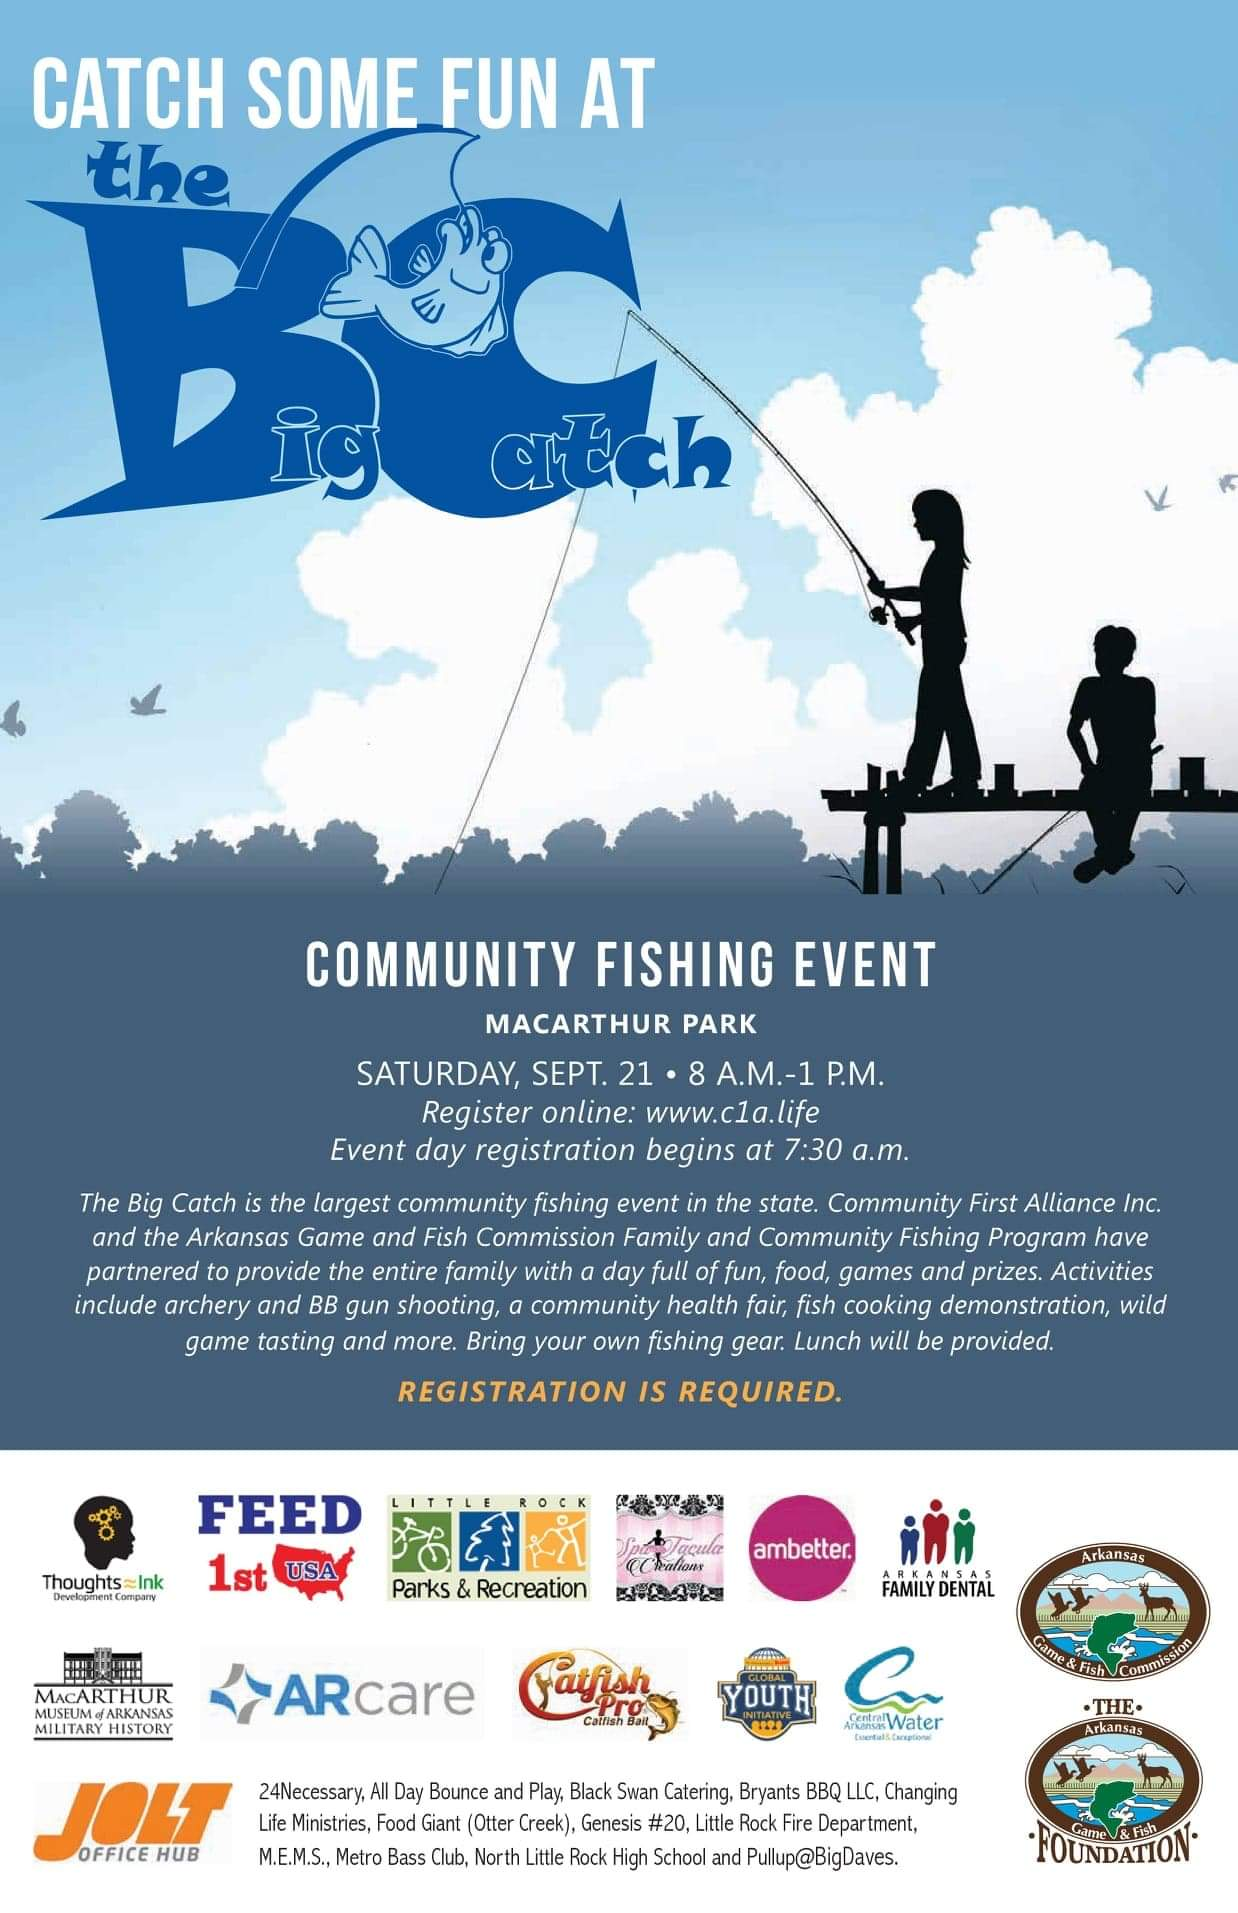 The Big Catch Community Fishing Event